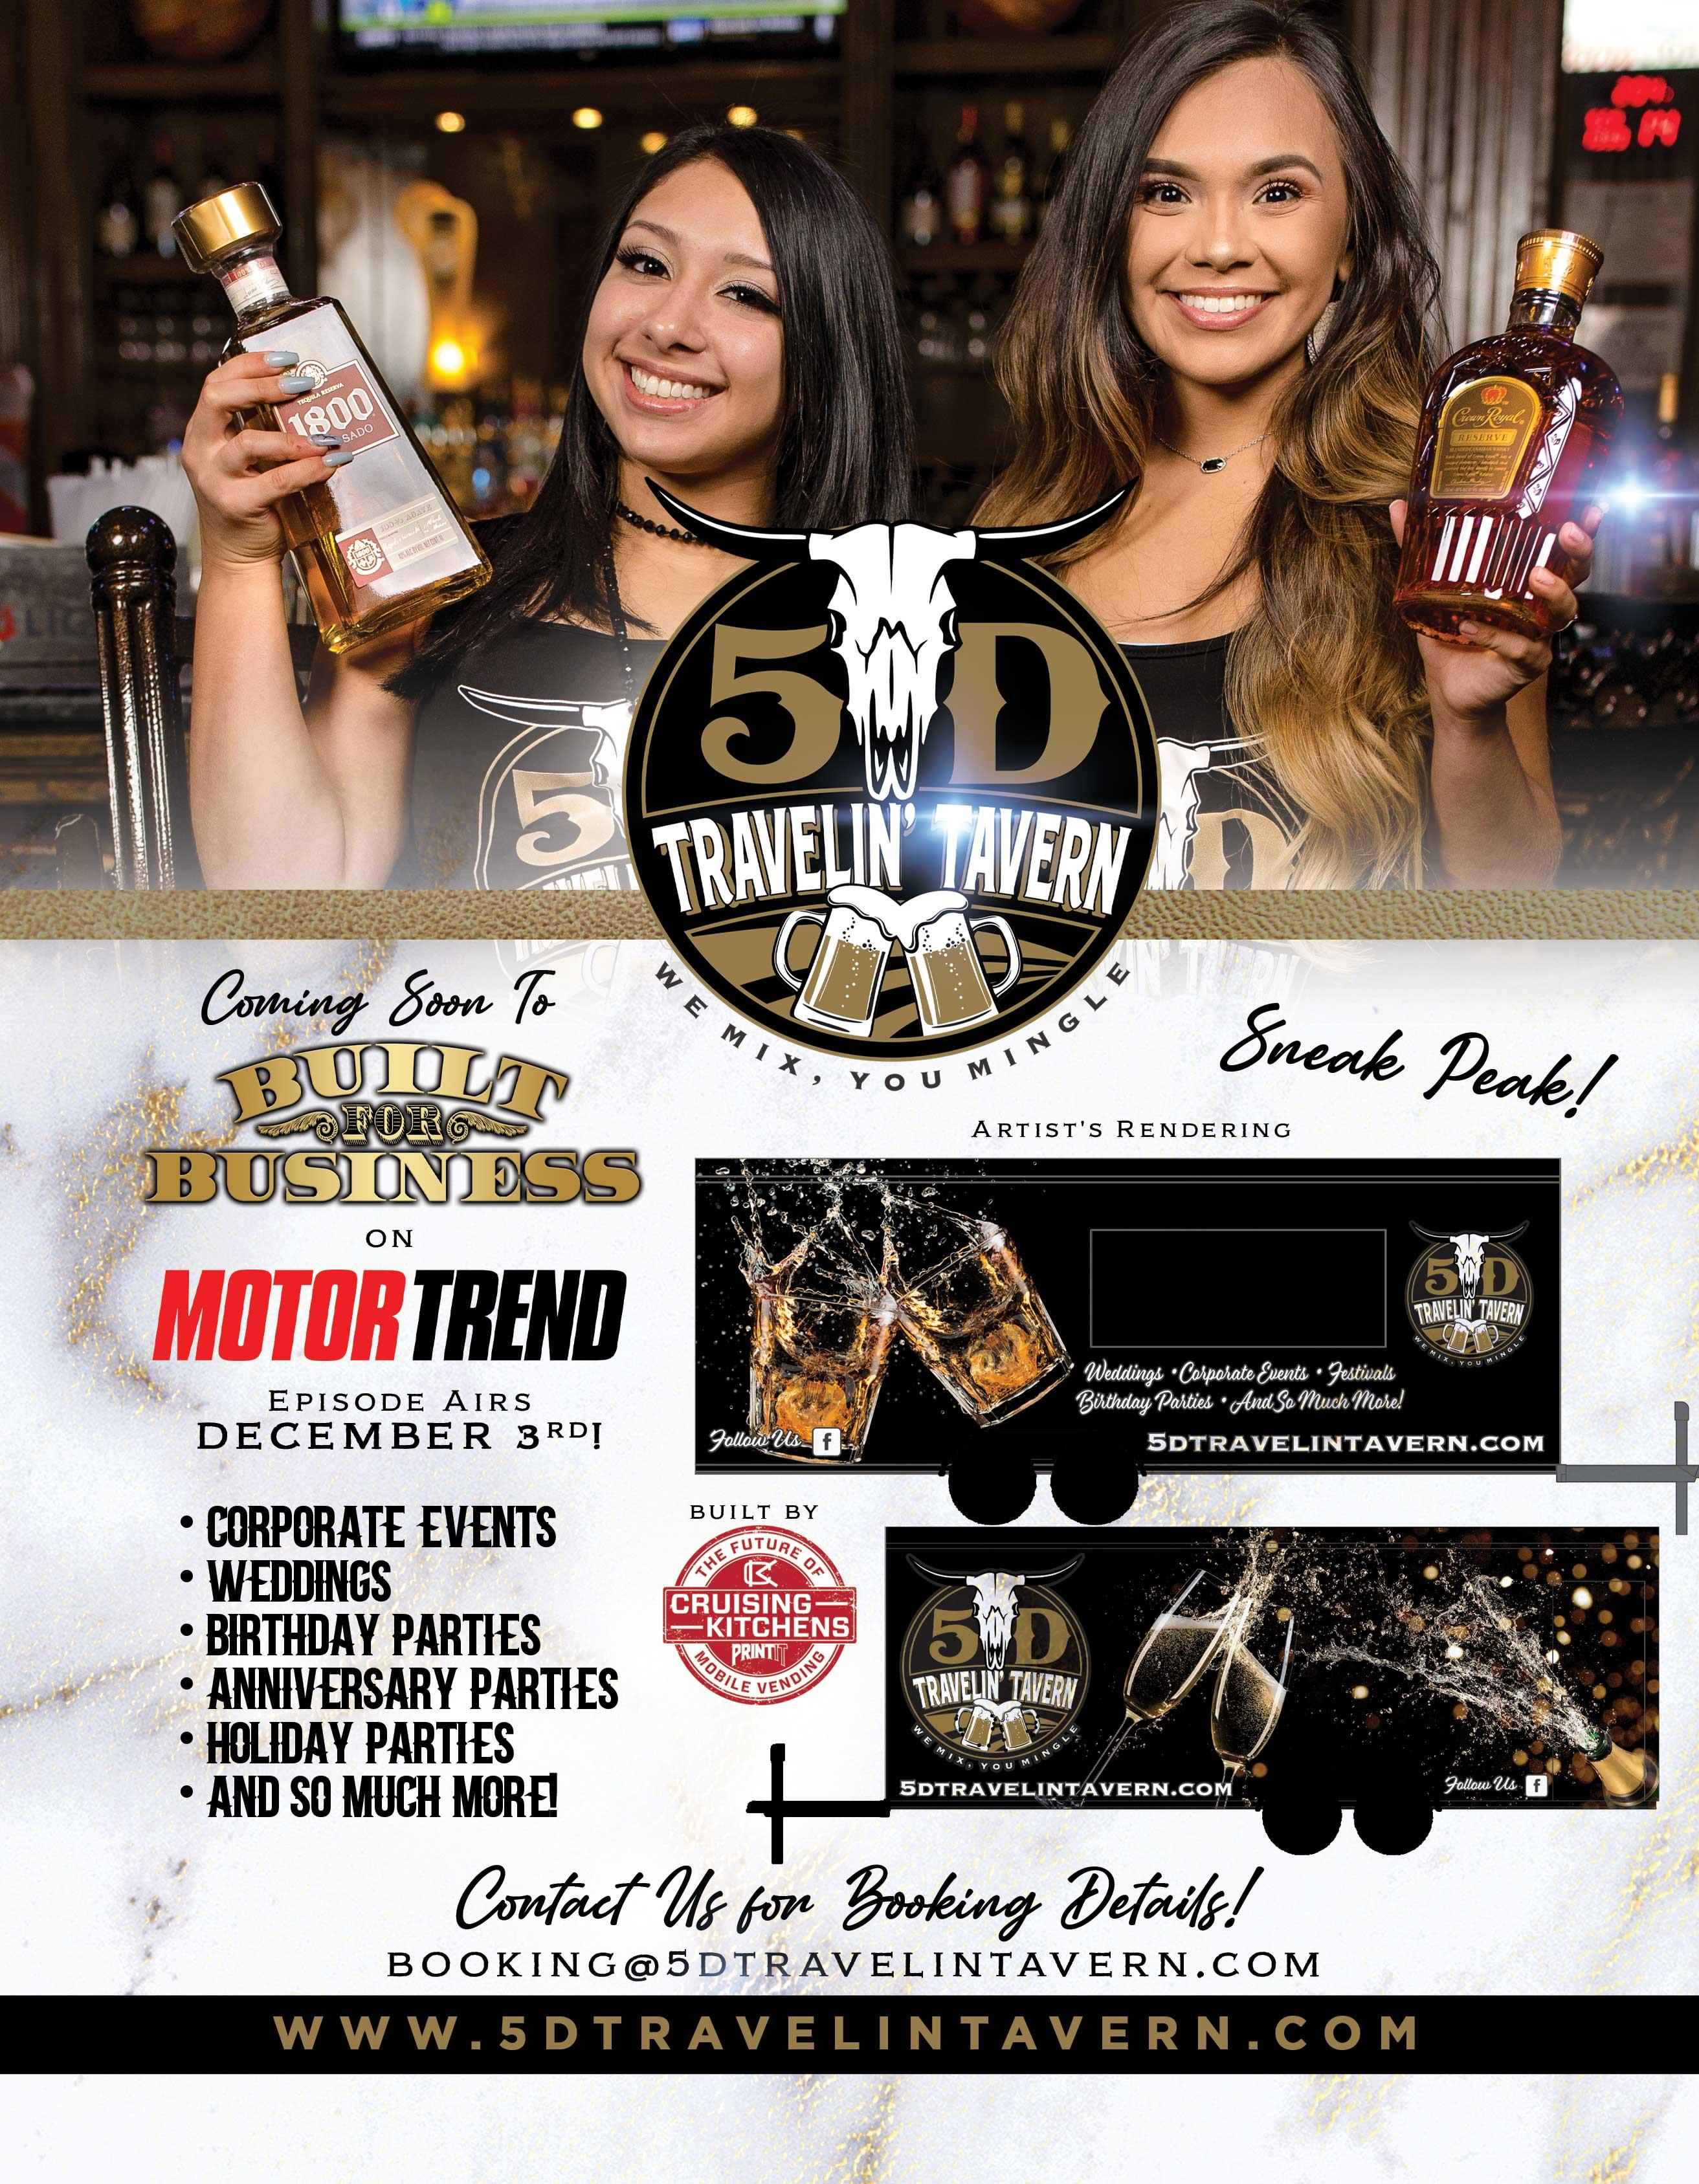 5d Travelin' Tavern. We mix you mingle. Coming soon to built for business on motortrend. Episode airs December 3rd! Corporate events, weddings, birthday parties, anniversary parties, holiday parties and so much more. Contact us for booking details. Booking@5dtravelintavern.com